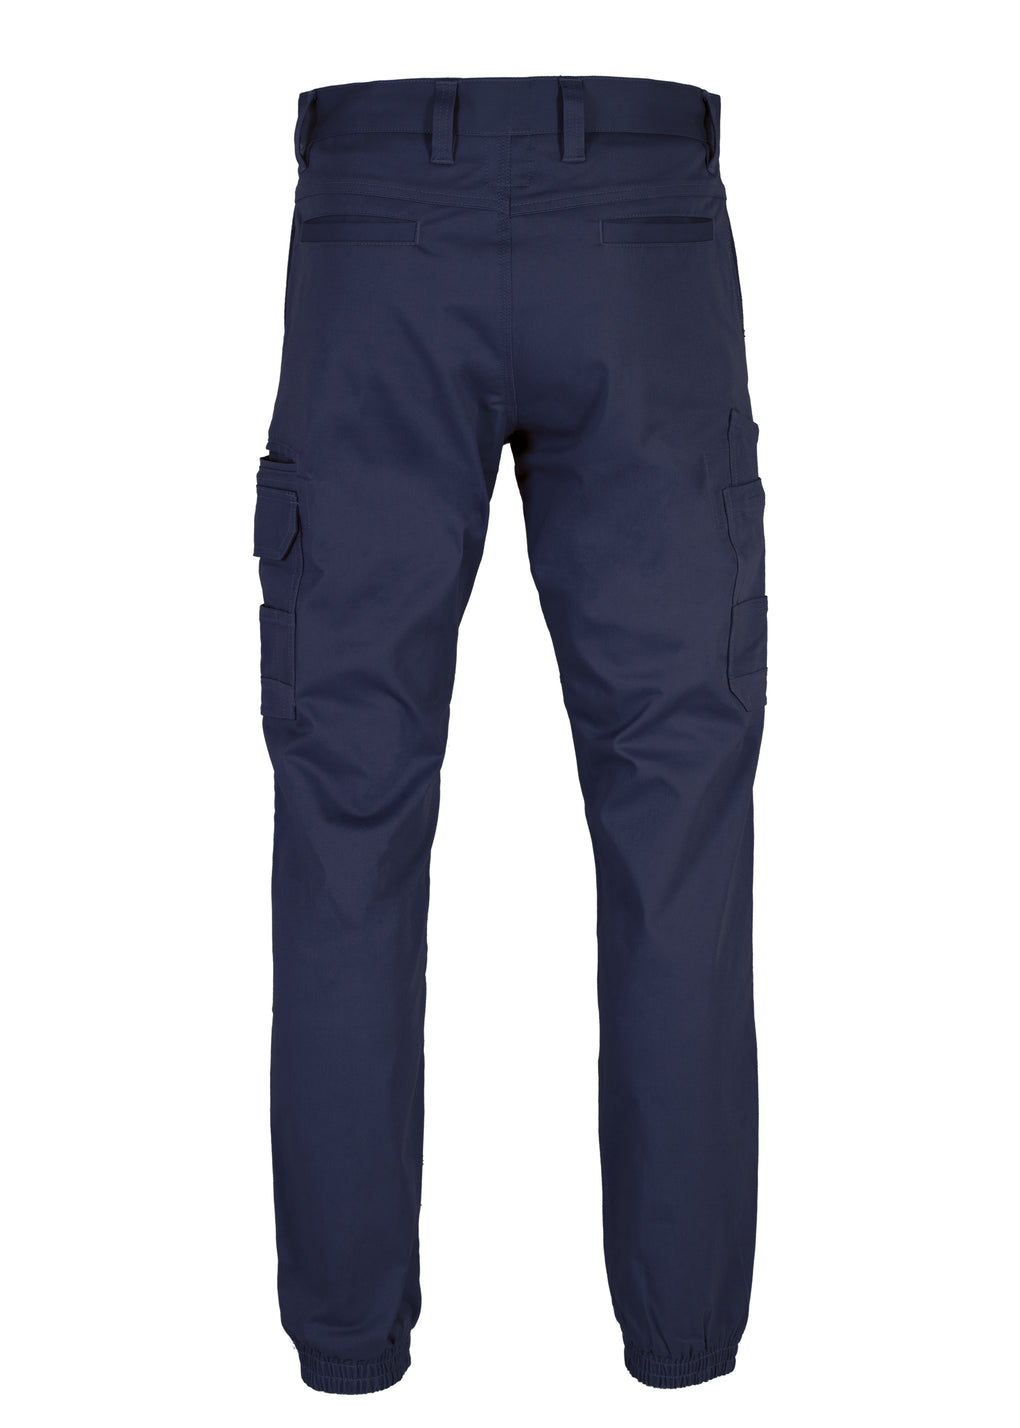 Demolition Cargo Cuffed Work Pants